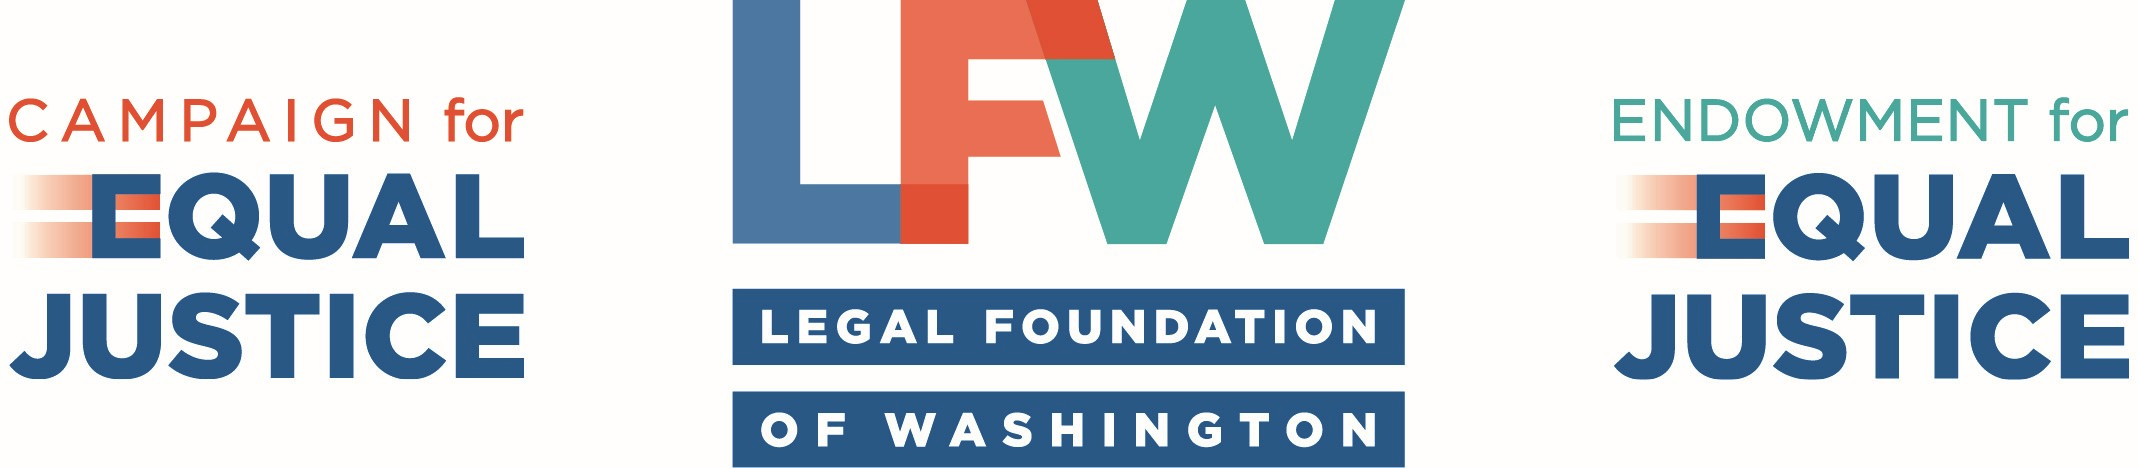 Logos for Legal Foundation of Washington, Campaign for Equal Justice, and Endowment for Equal Justice